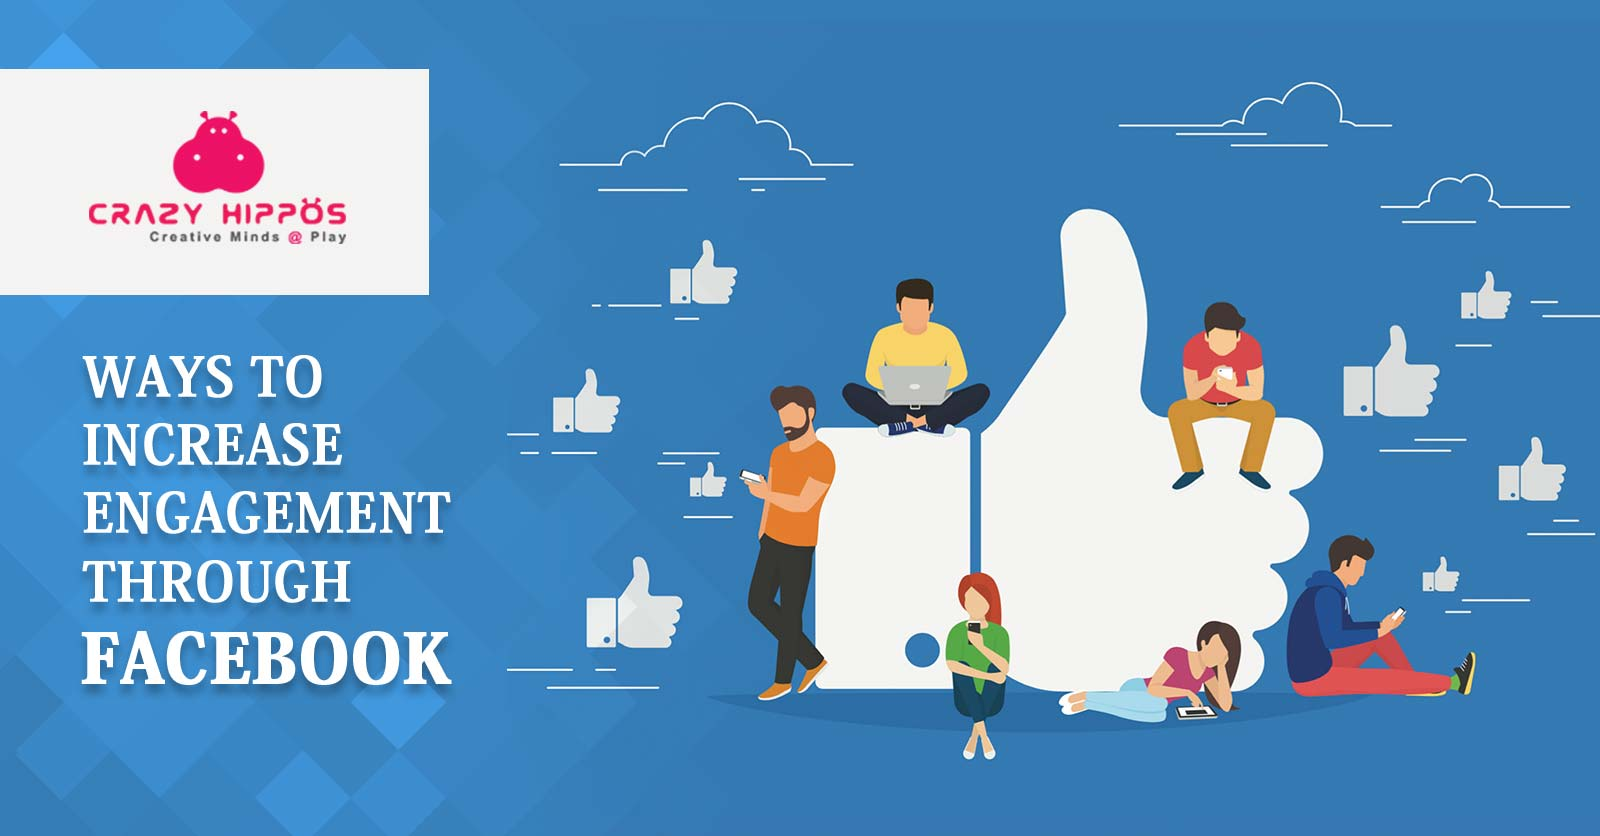 3 Tips for Facebook Enhancement